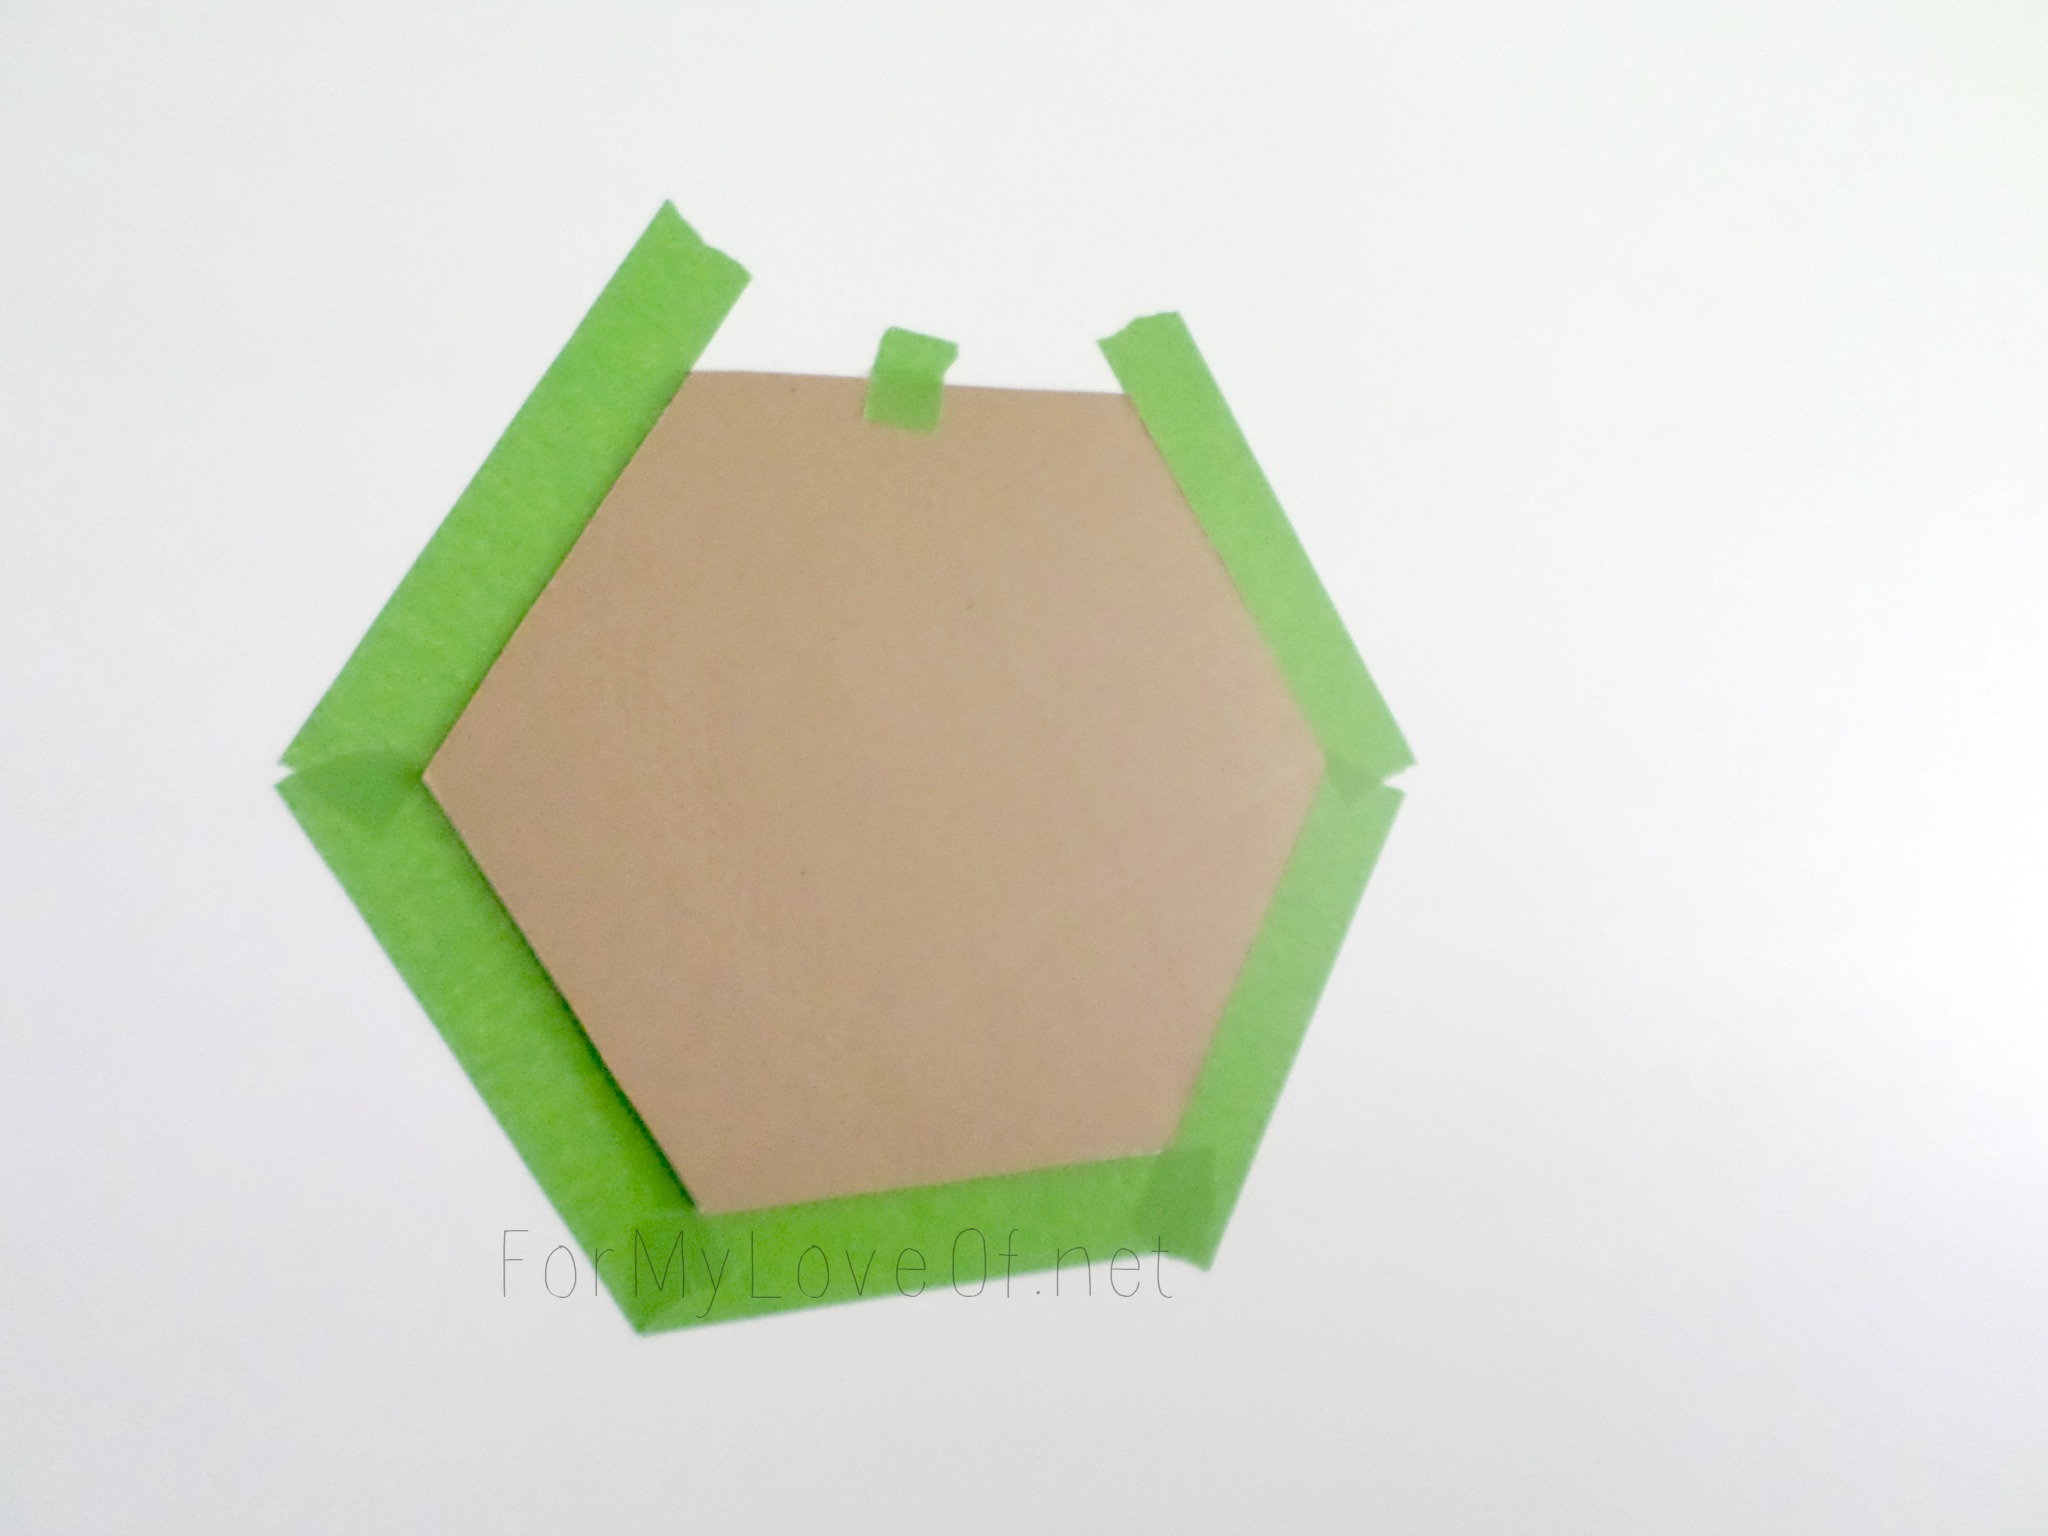 Remodelaholic diy ombre painted hexagon accent wall cardboard hexagon stencil for accent wall for my love of featured on remodelaholic amipublicfo Gallery